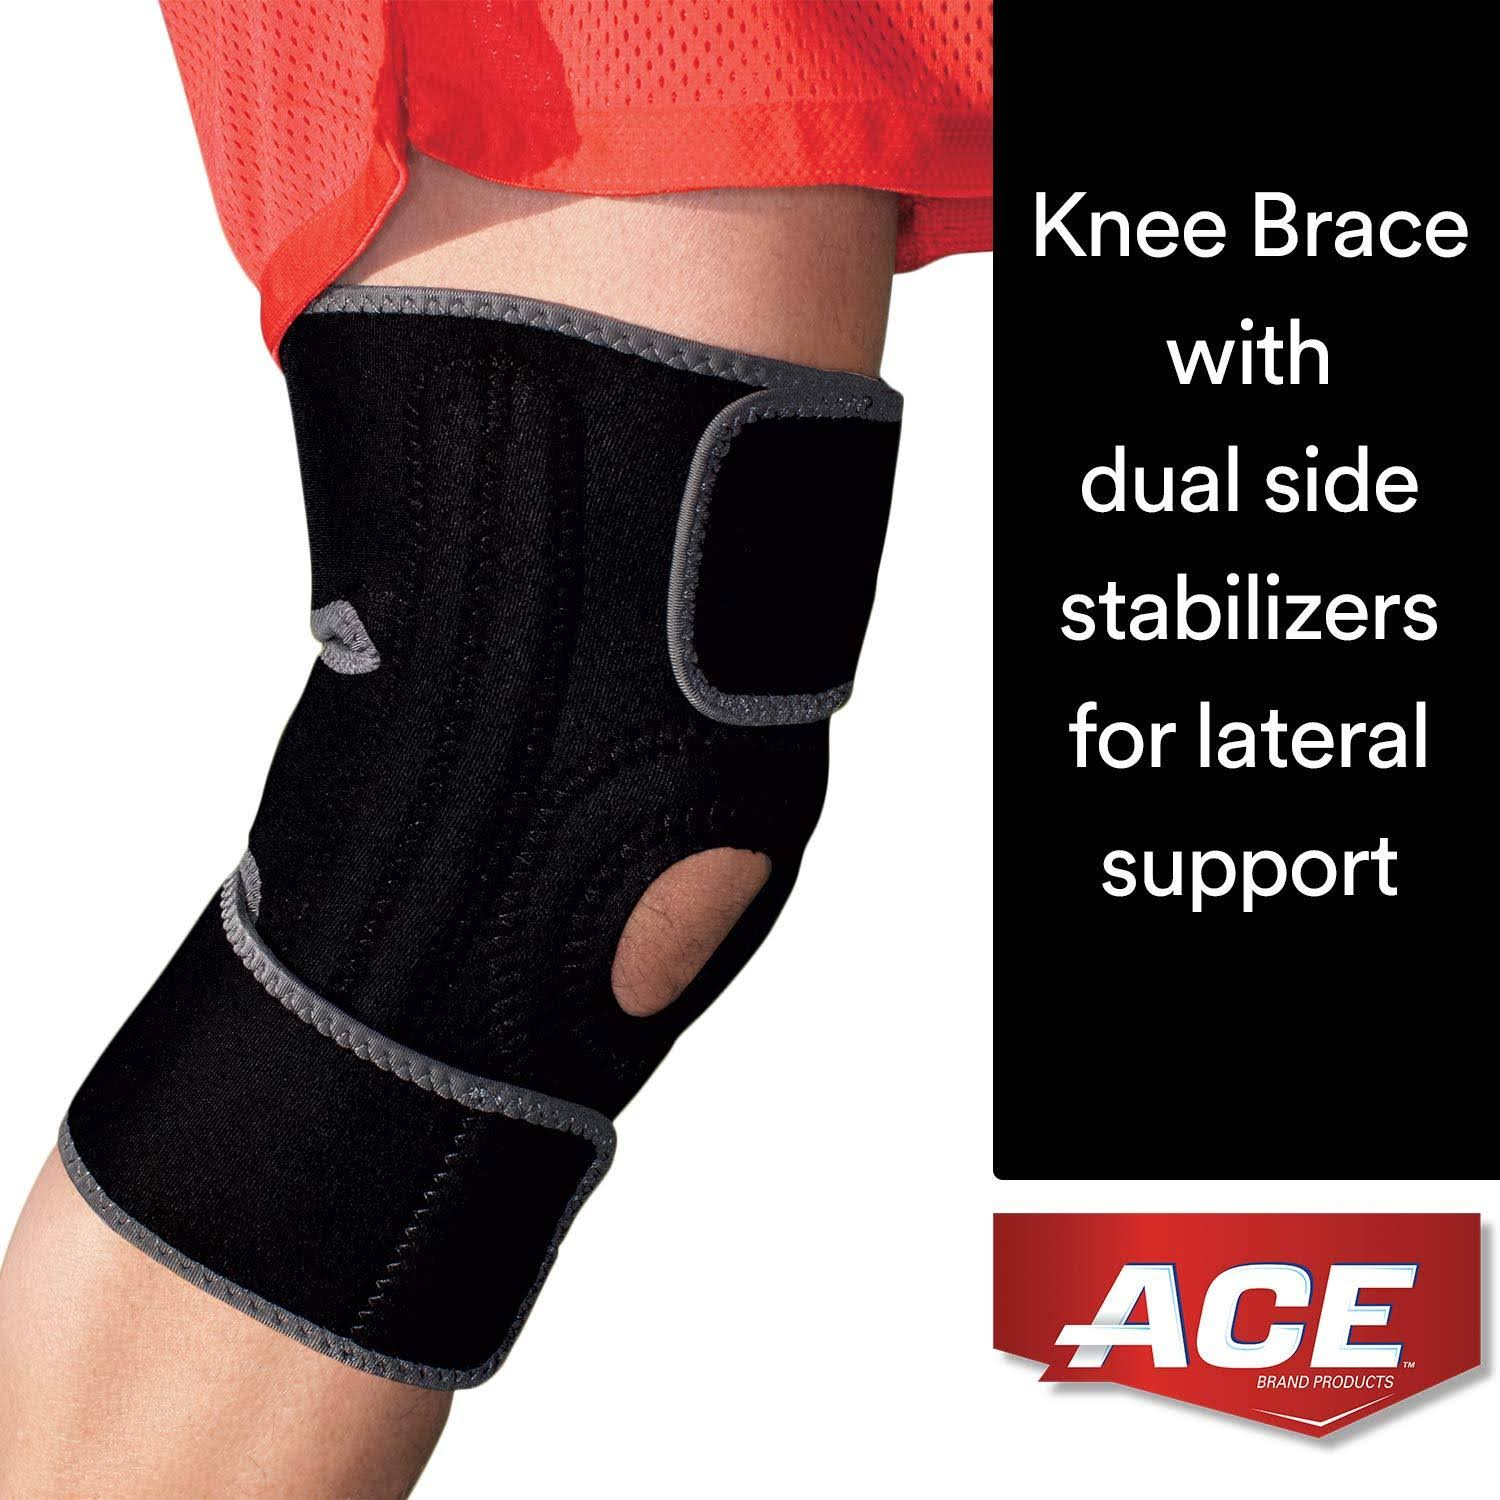 ACE Brand Knee Brace - with Dual Side Stabilizers